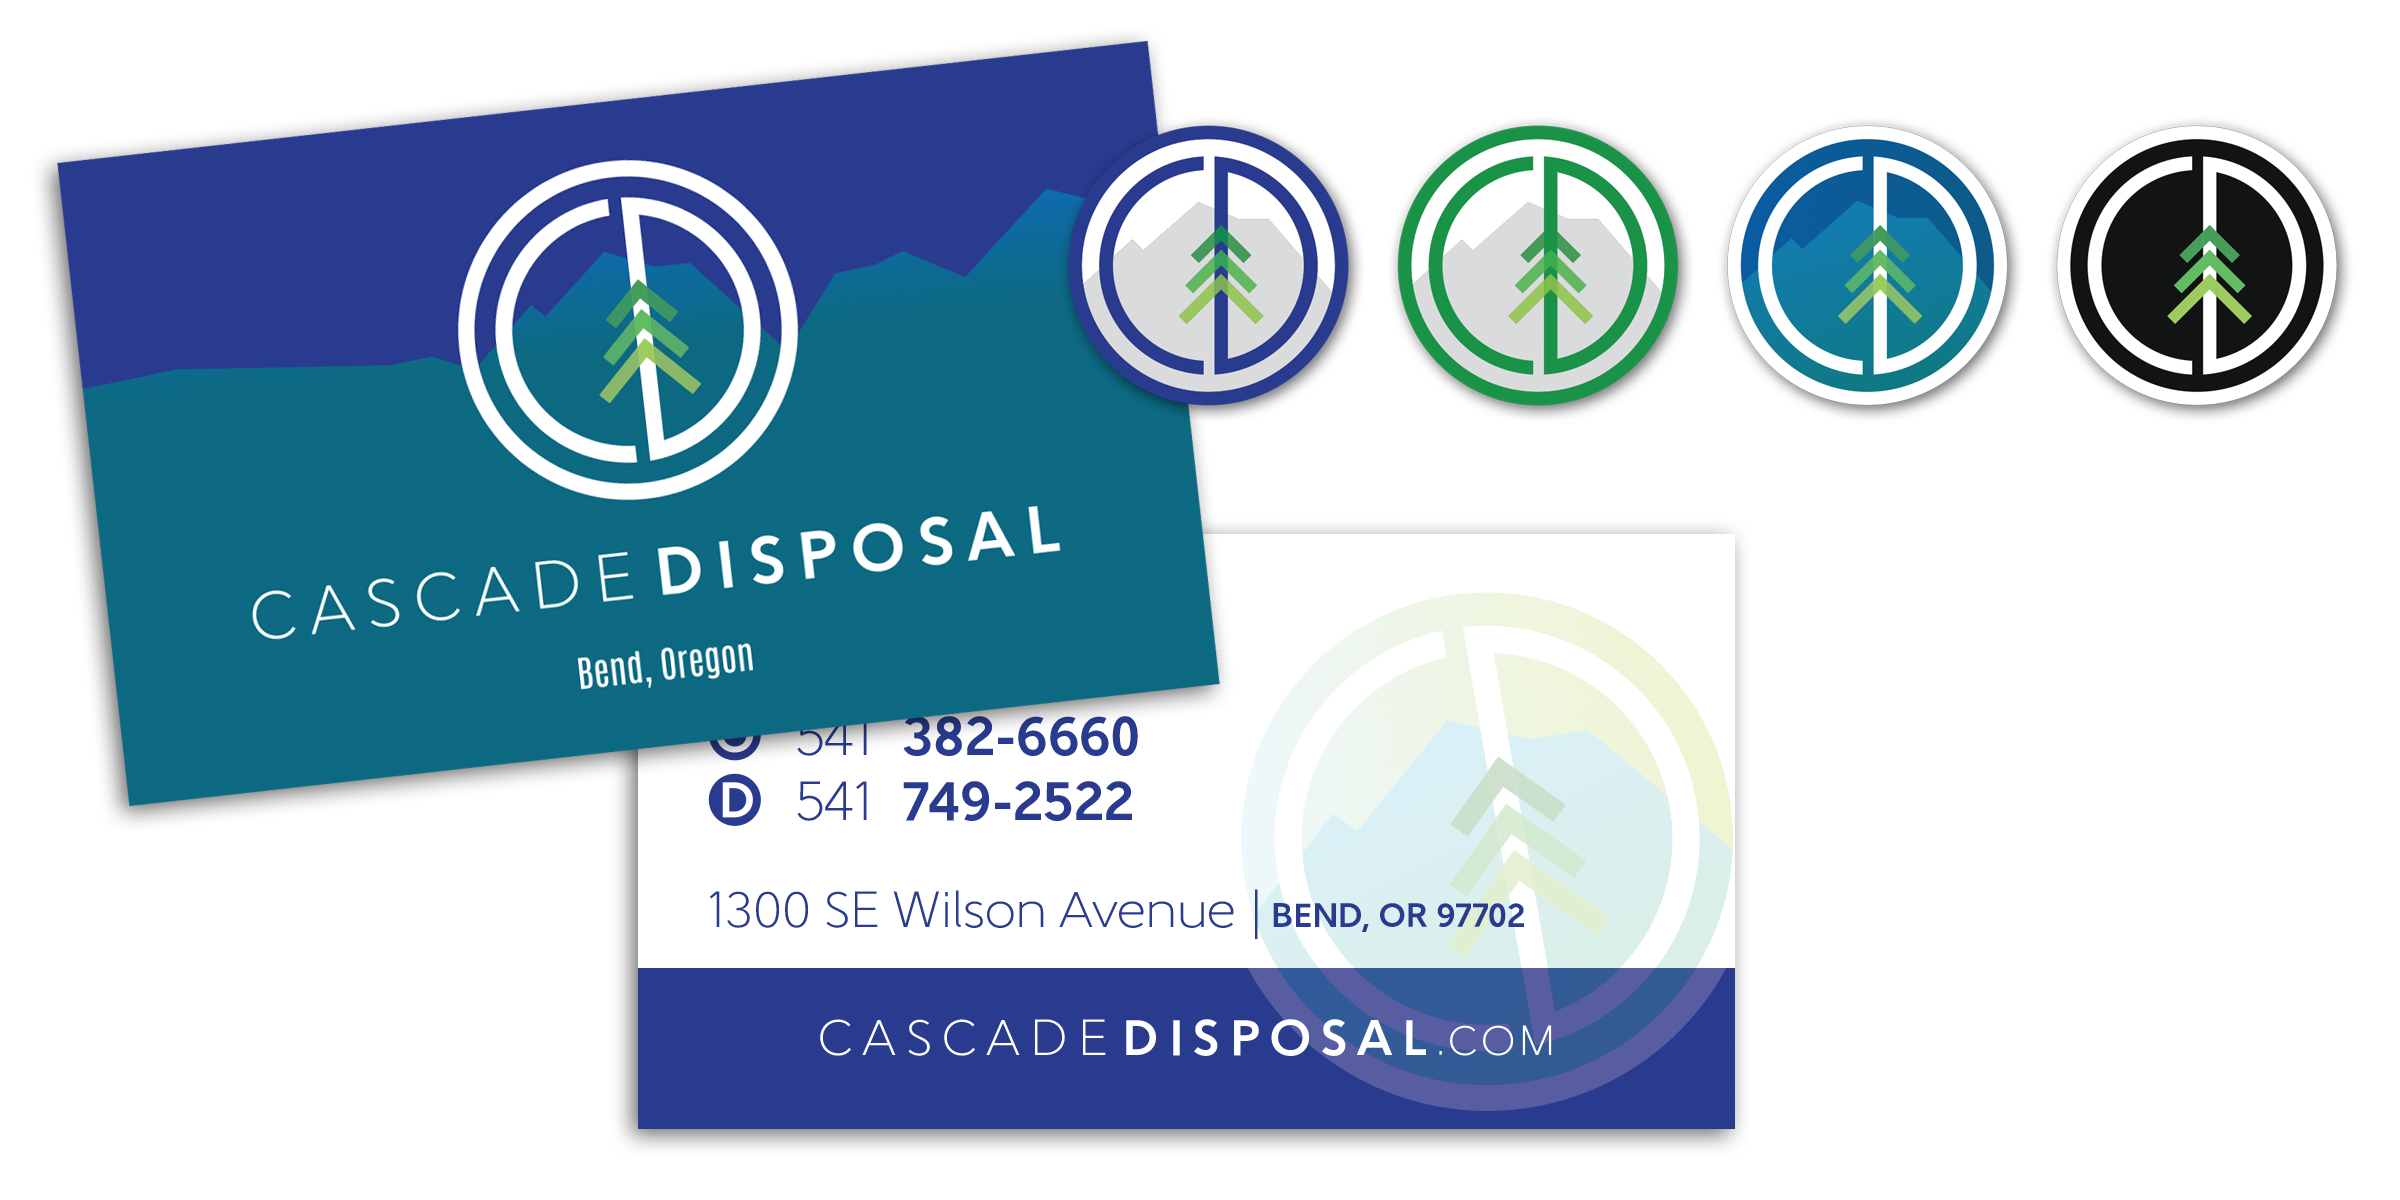 CascadeDisposal_print-package